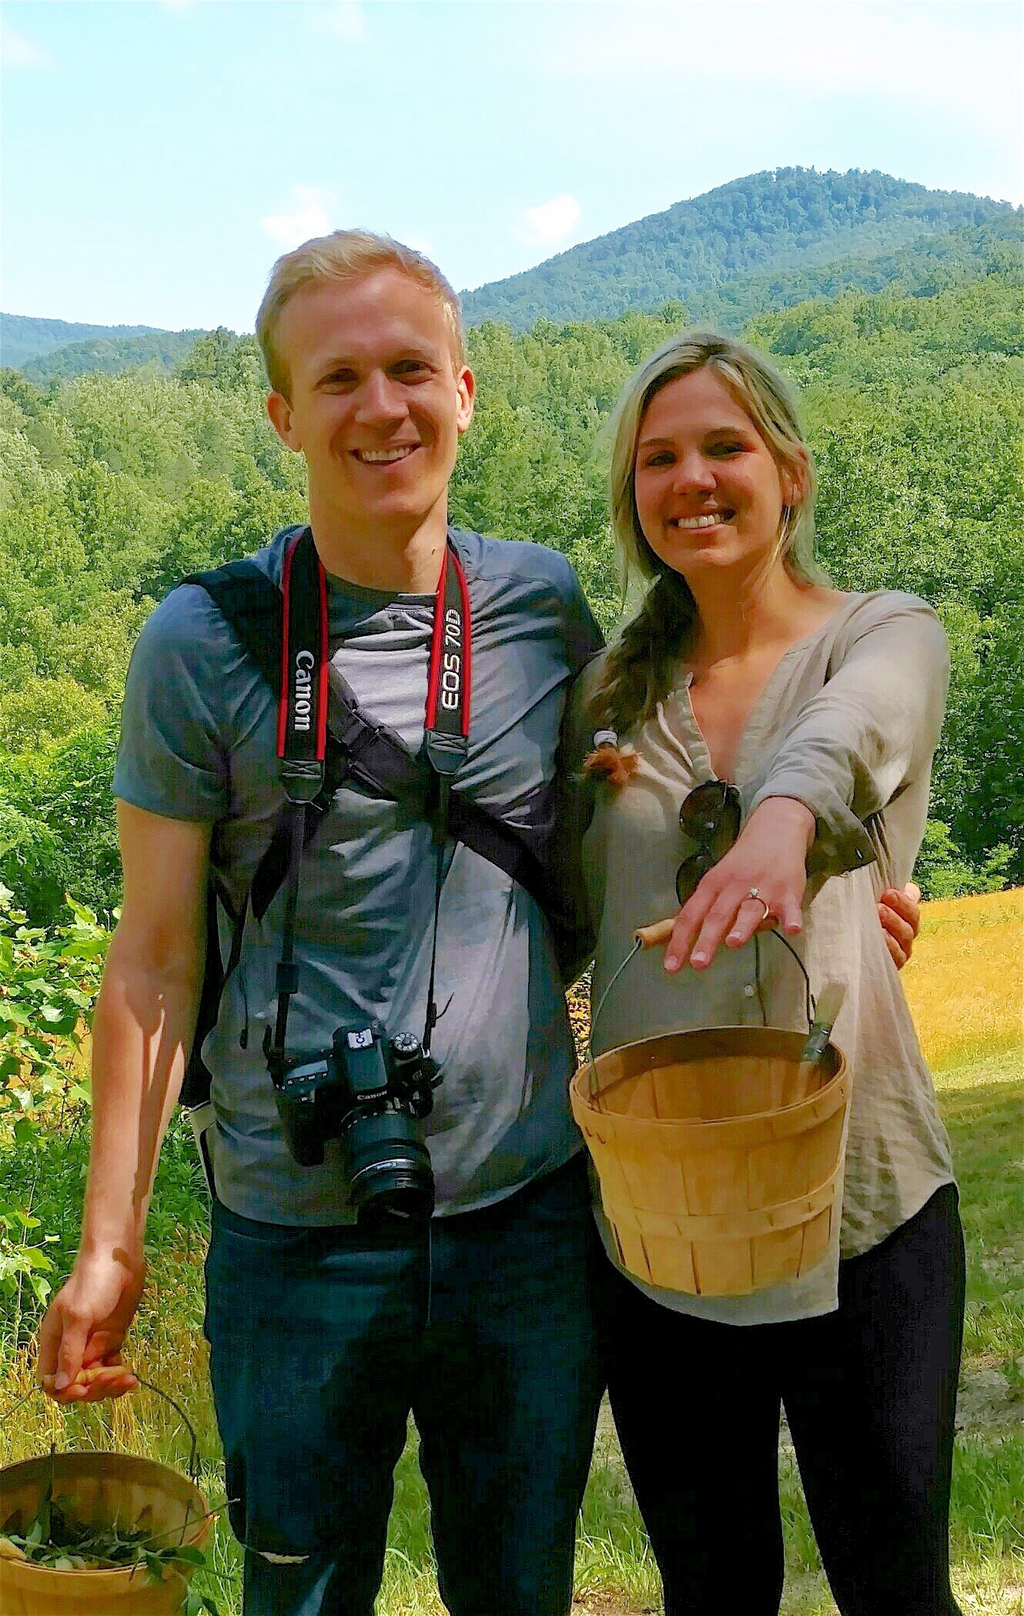 In this June 18, 2016 photo provided by No Taste Like Home, Rachel Linkous, with Christopher Rannefors, both 25, of Lexington, Ky., sho...